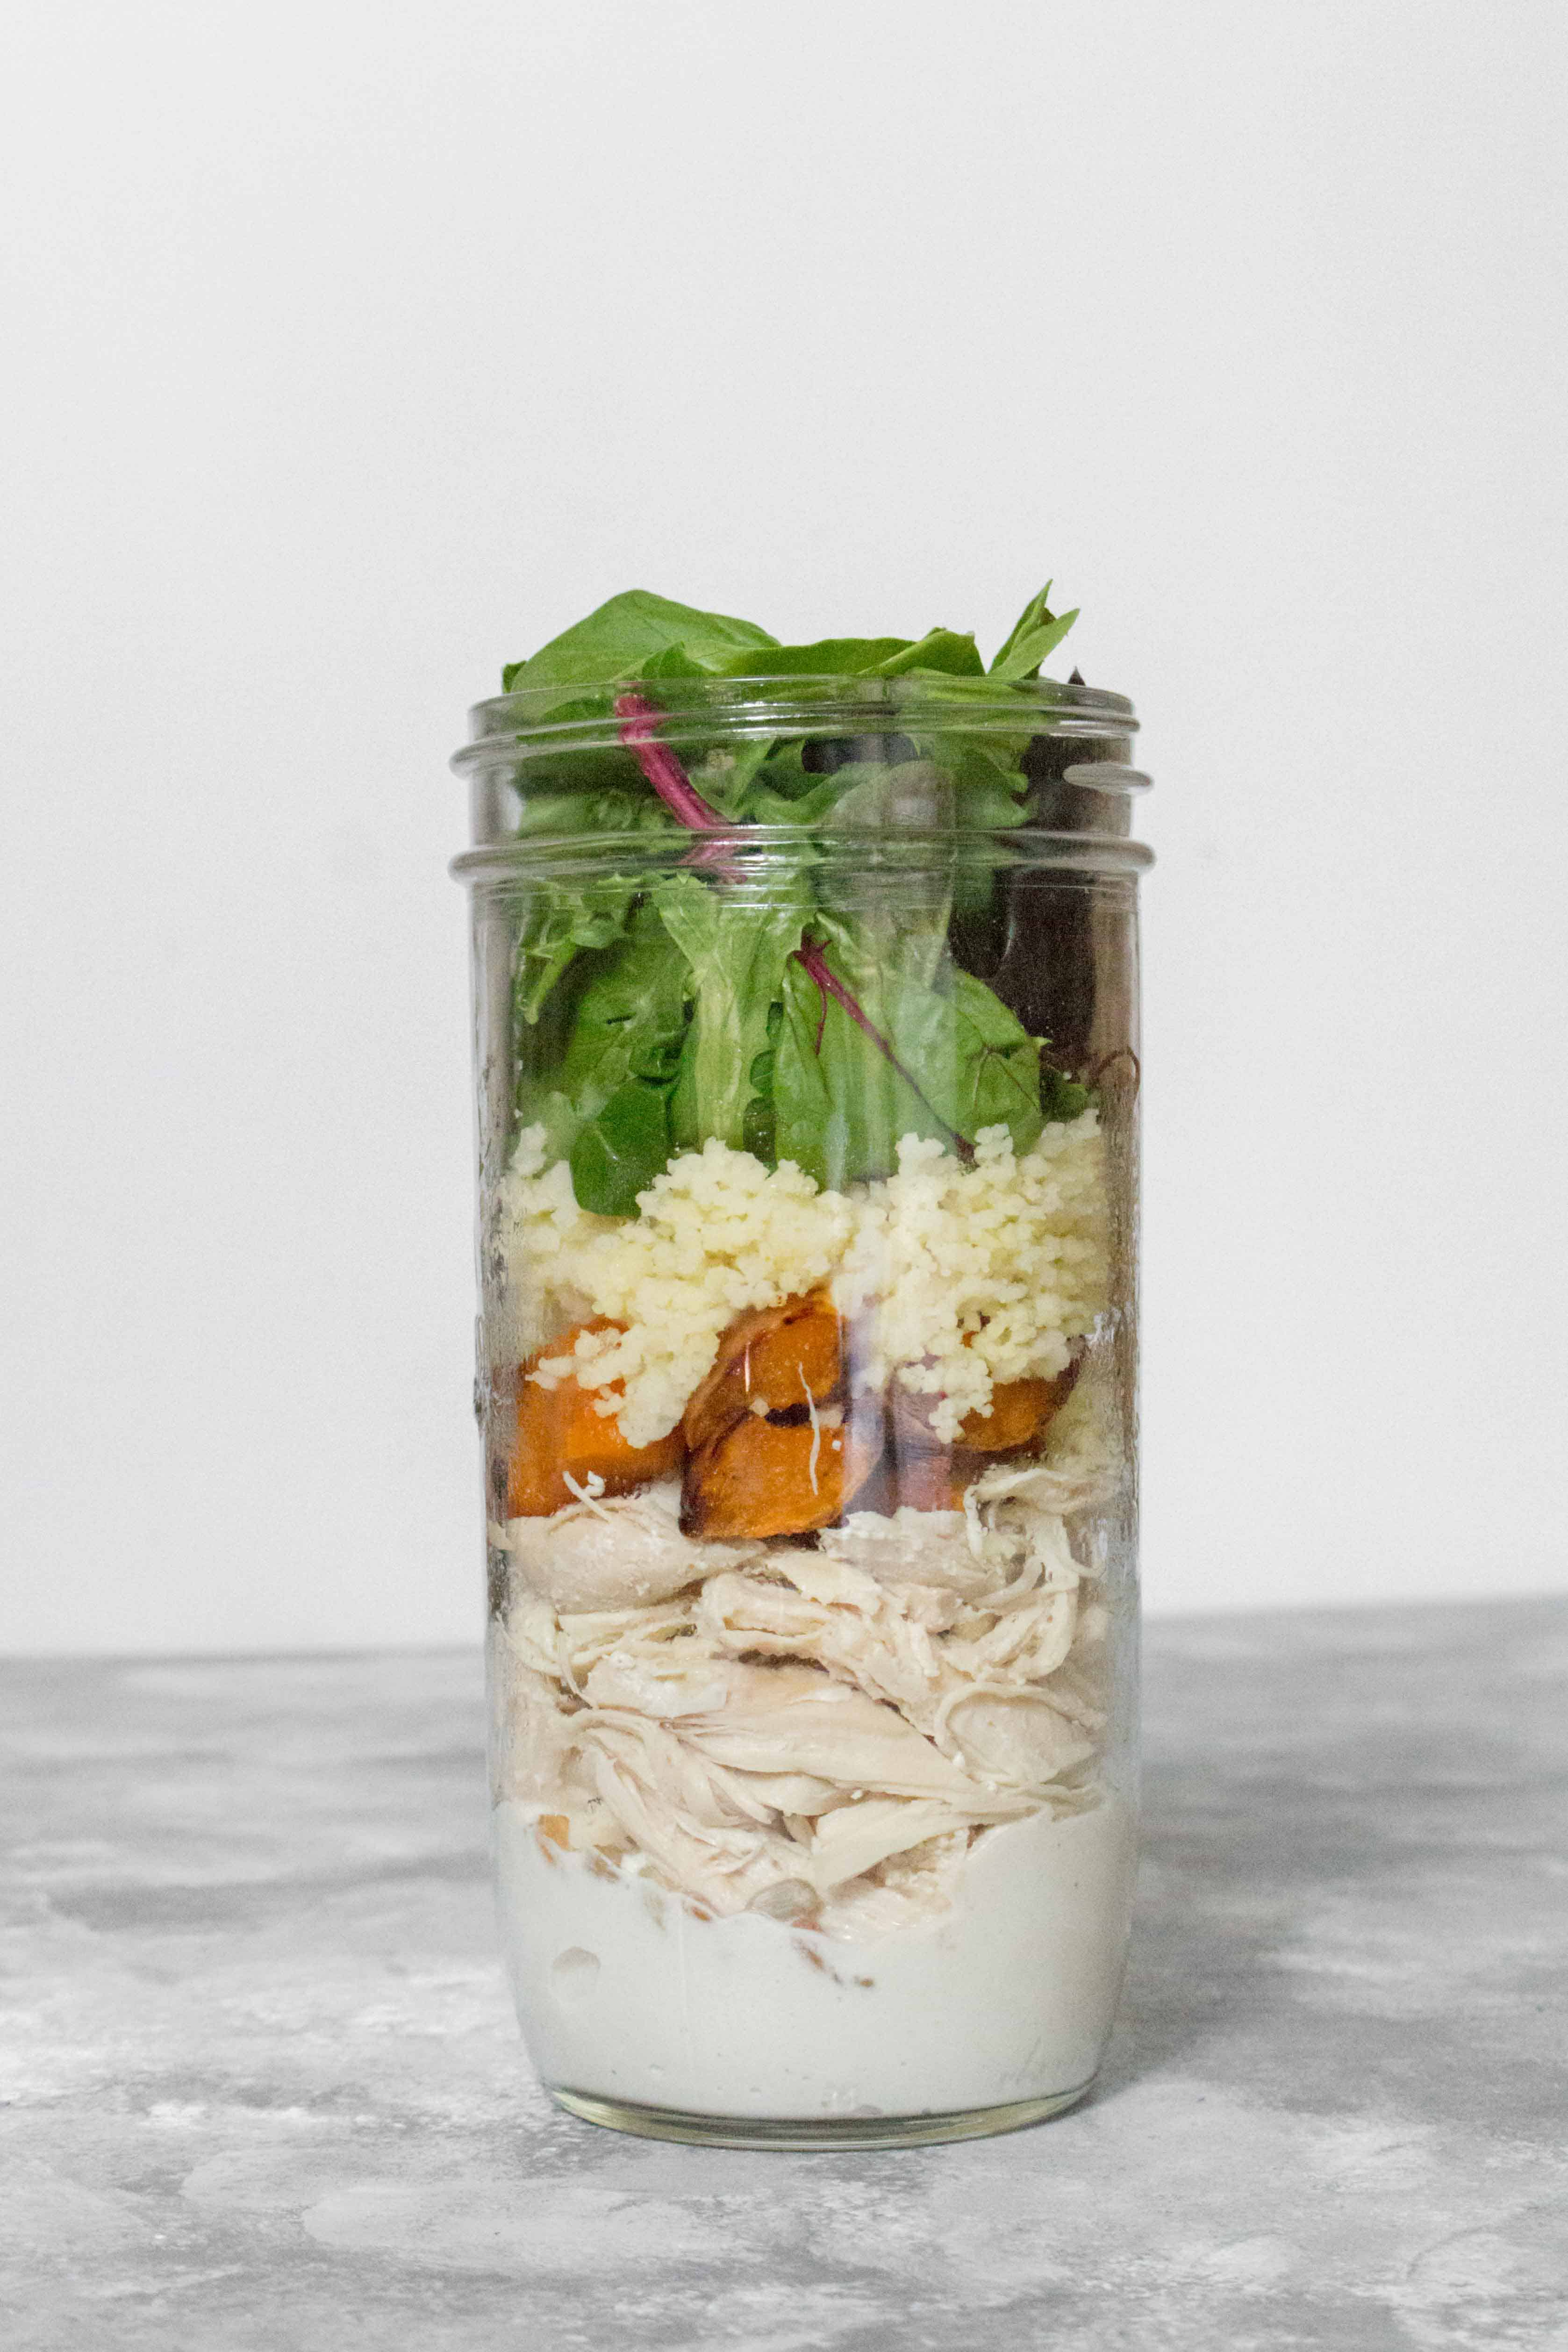 This Summer Couscous Chicken Mason Jar Salad is super easy to make and will make your work lunches much more exciting!